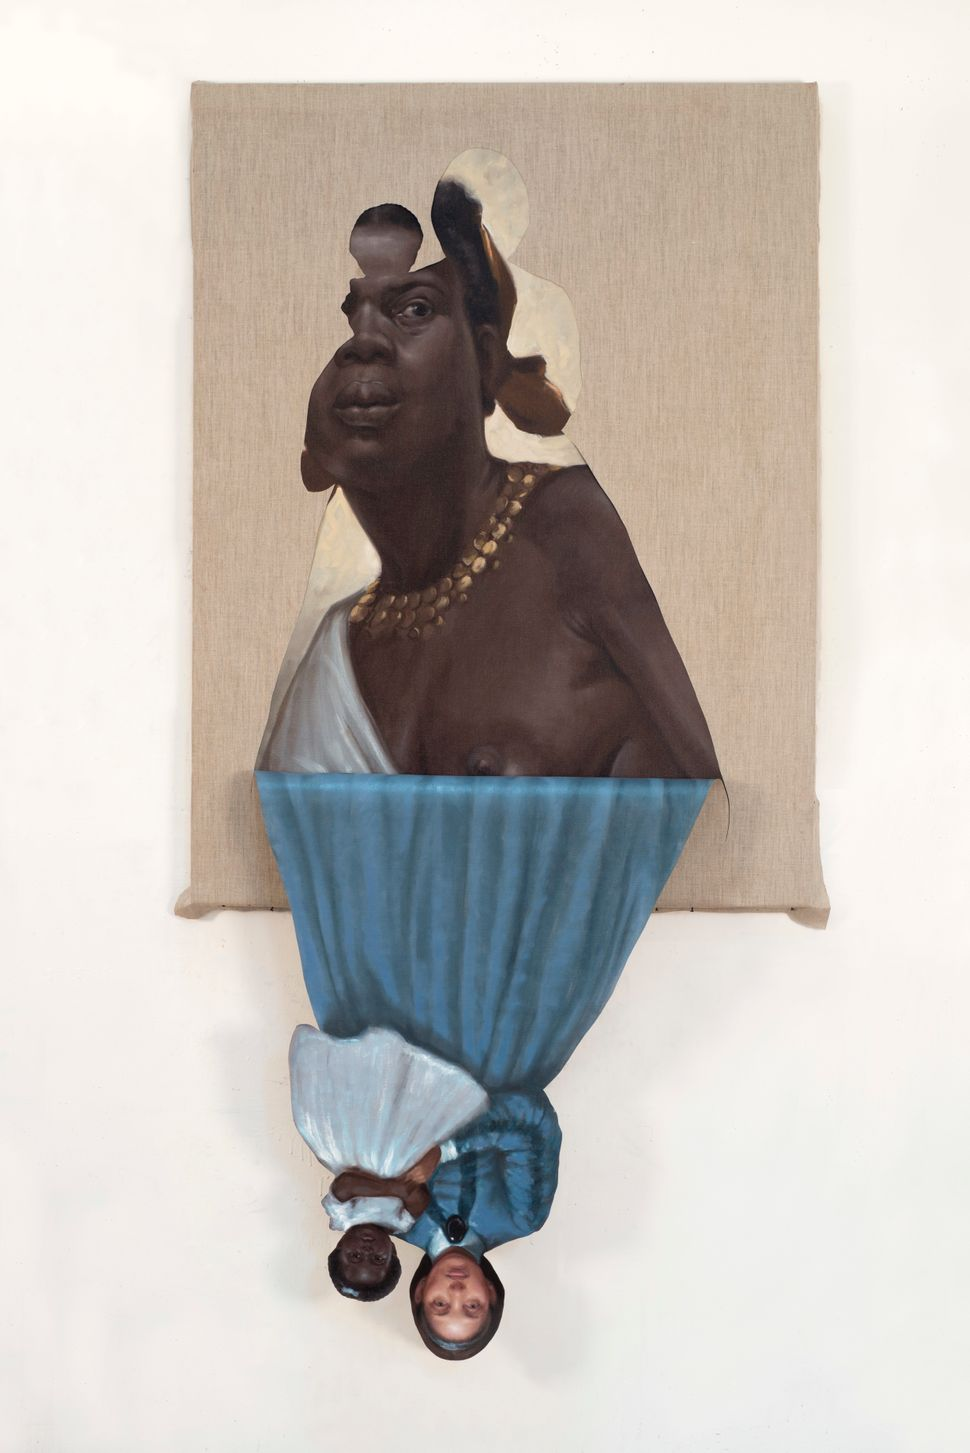 Her Mother's Mother's Mother, 2014 oil on canvas 72 x 36 x 1 3/4 inches ©Titus Kaphar. Courtesy of the artist and Jack Shainm